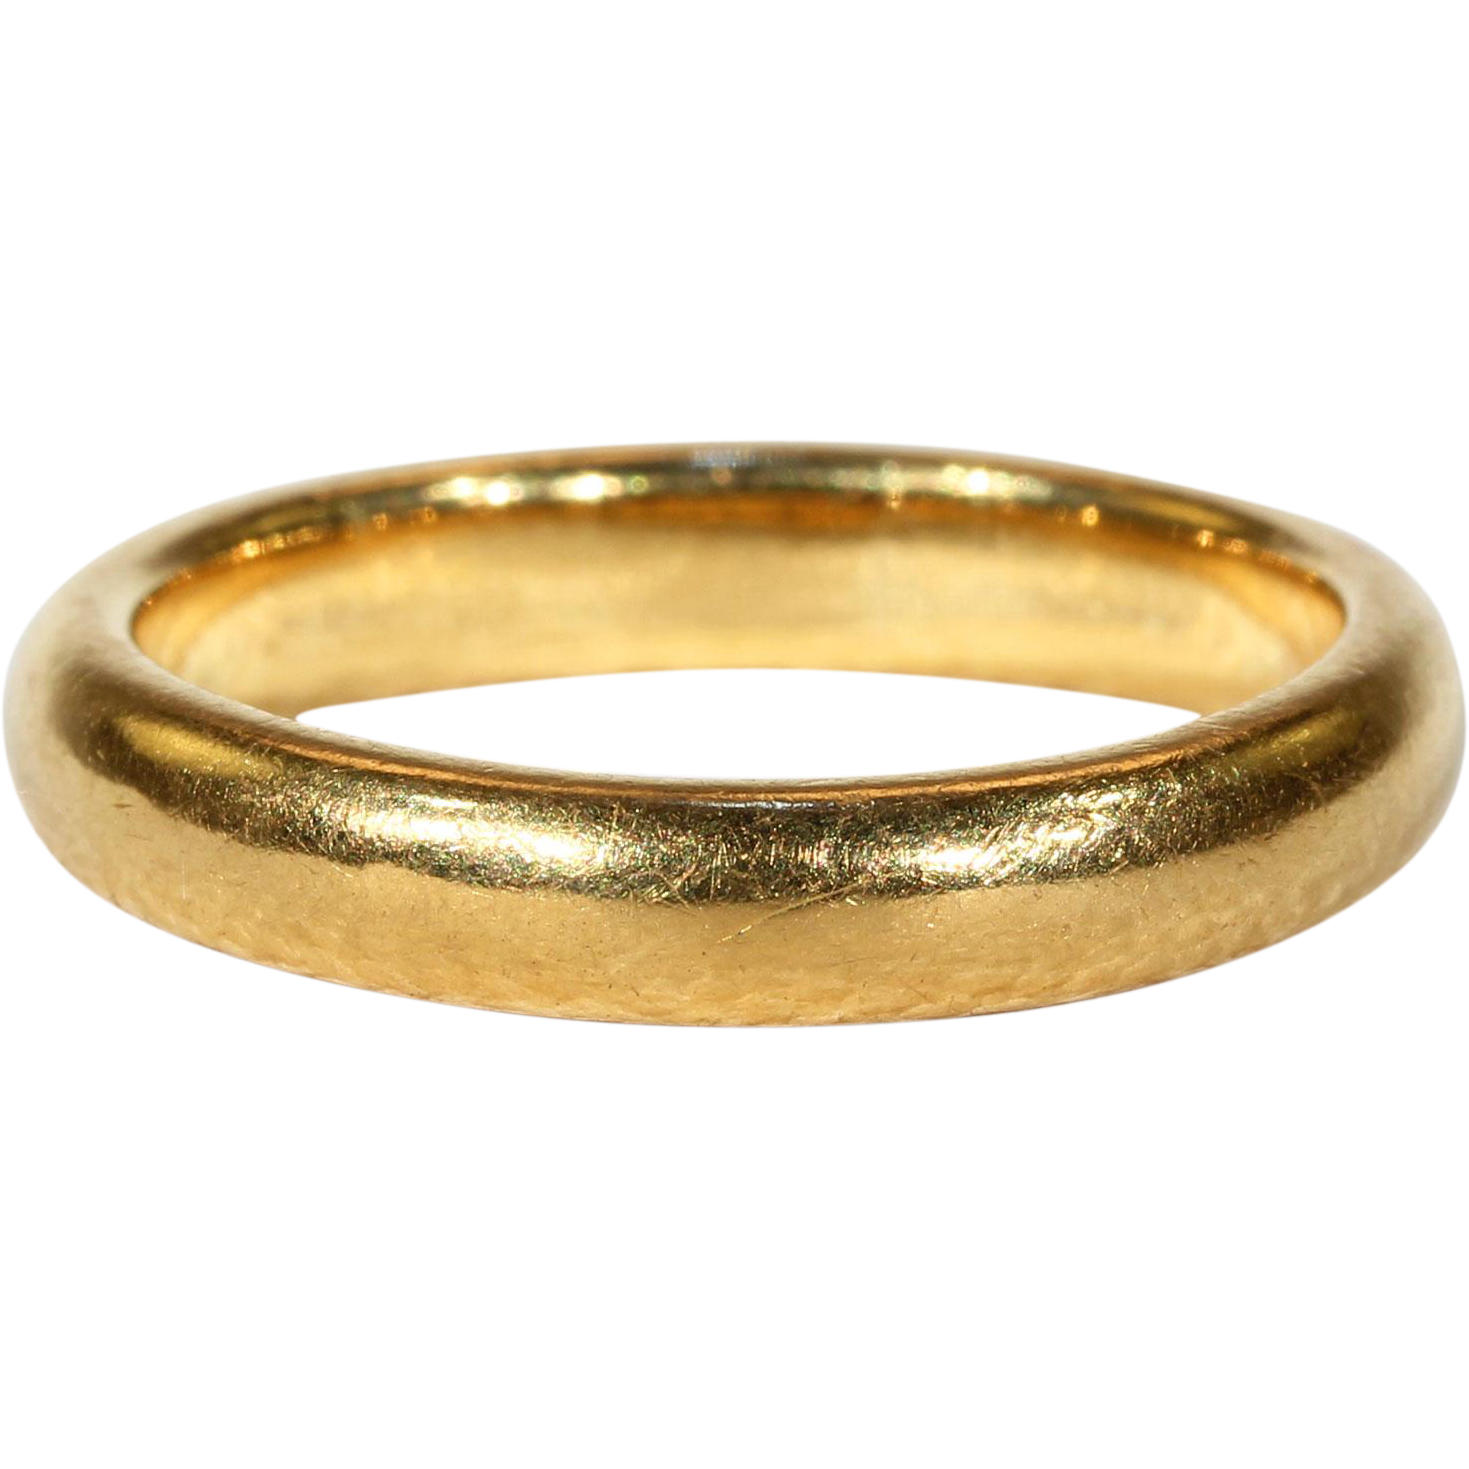 bluestone ayasya gold india the stackable jewellery online rings ring pics buy designs in